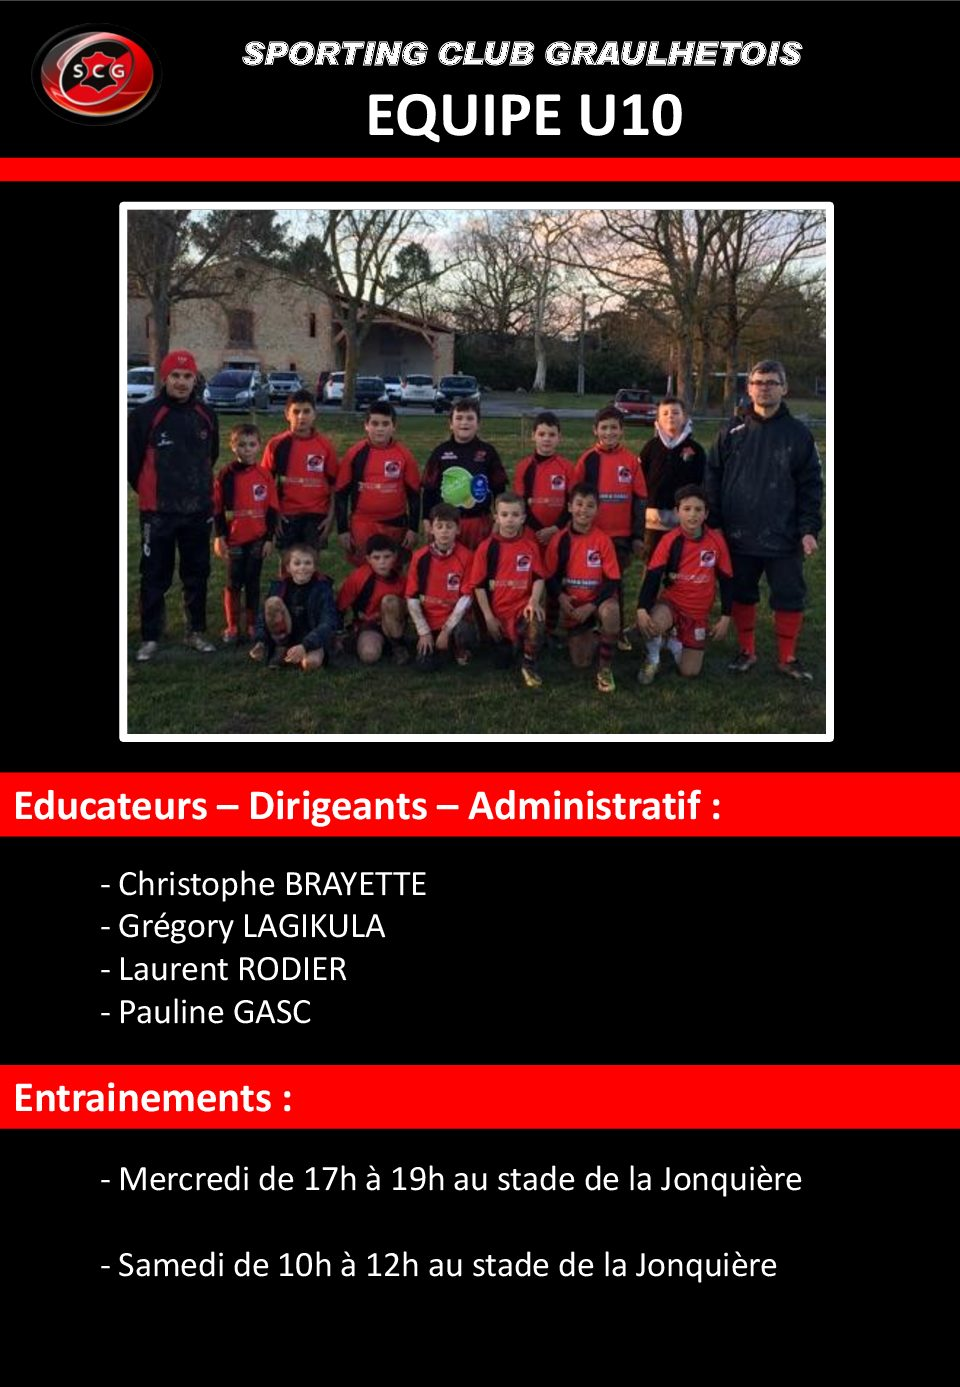 http://scg-rugby.com/wp-content/uploads/2018/04/U10-GROUPE-pdf-2.jpg